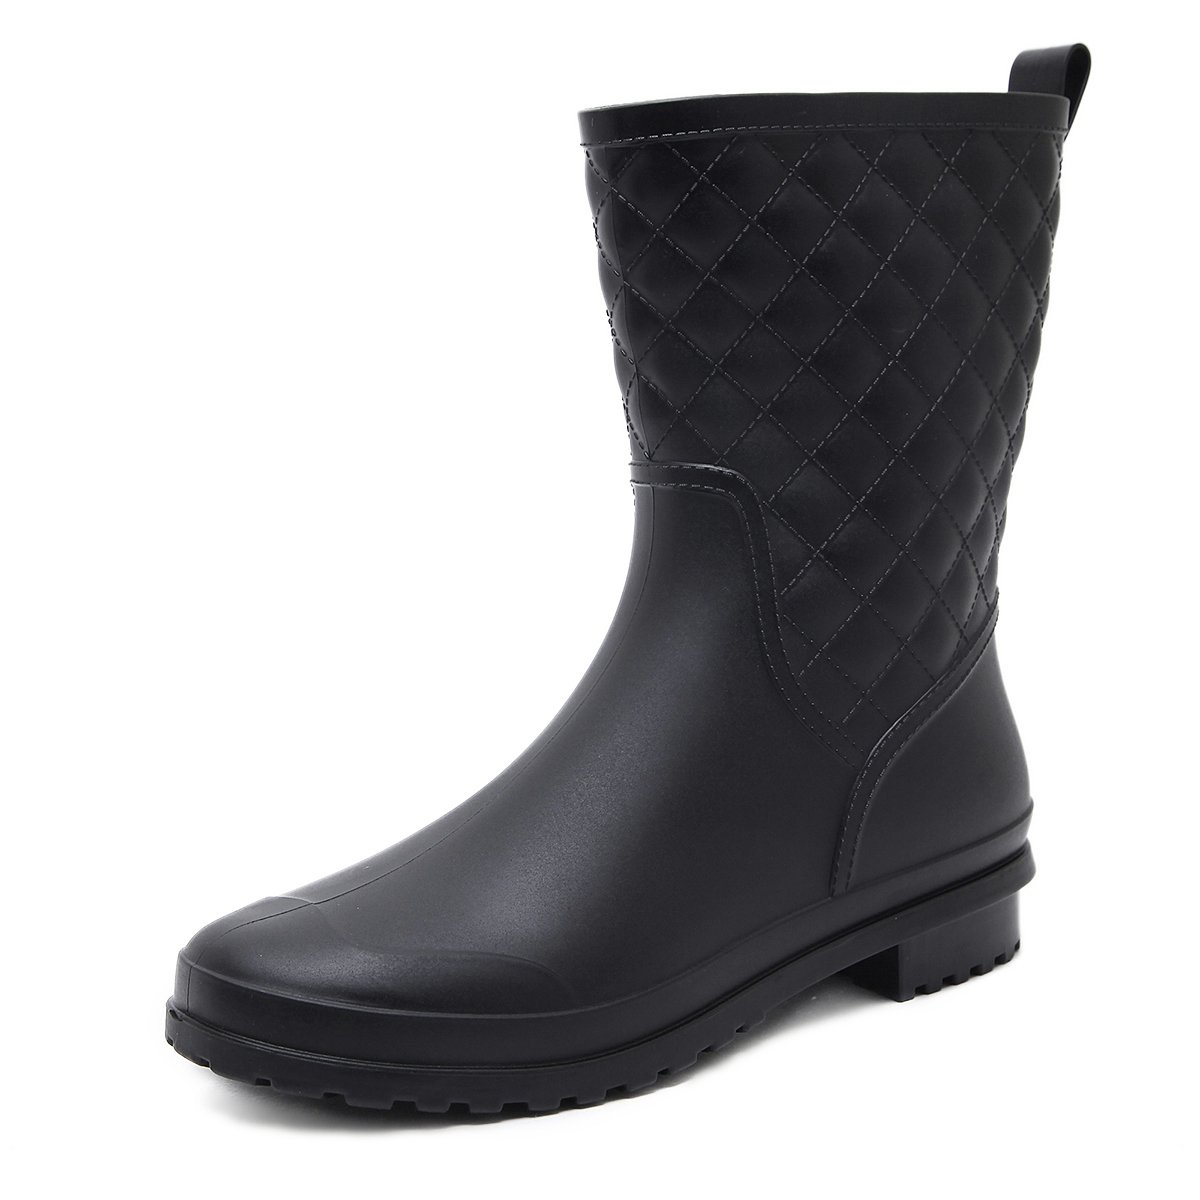 Asgard Women's Mid Calf Rain Boots Waterproof Rubber Booties BK40